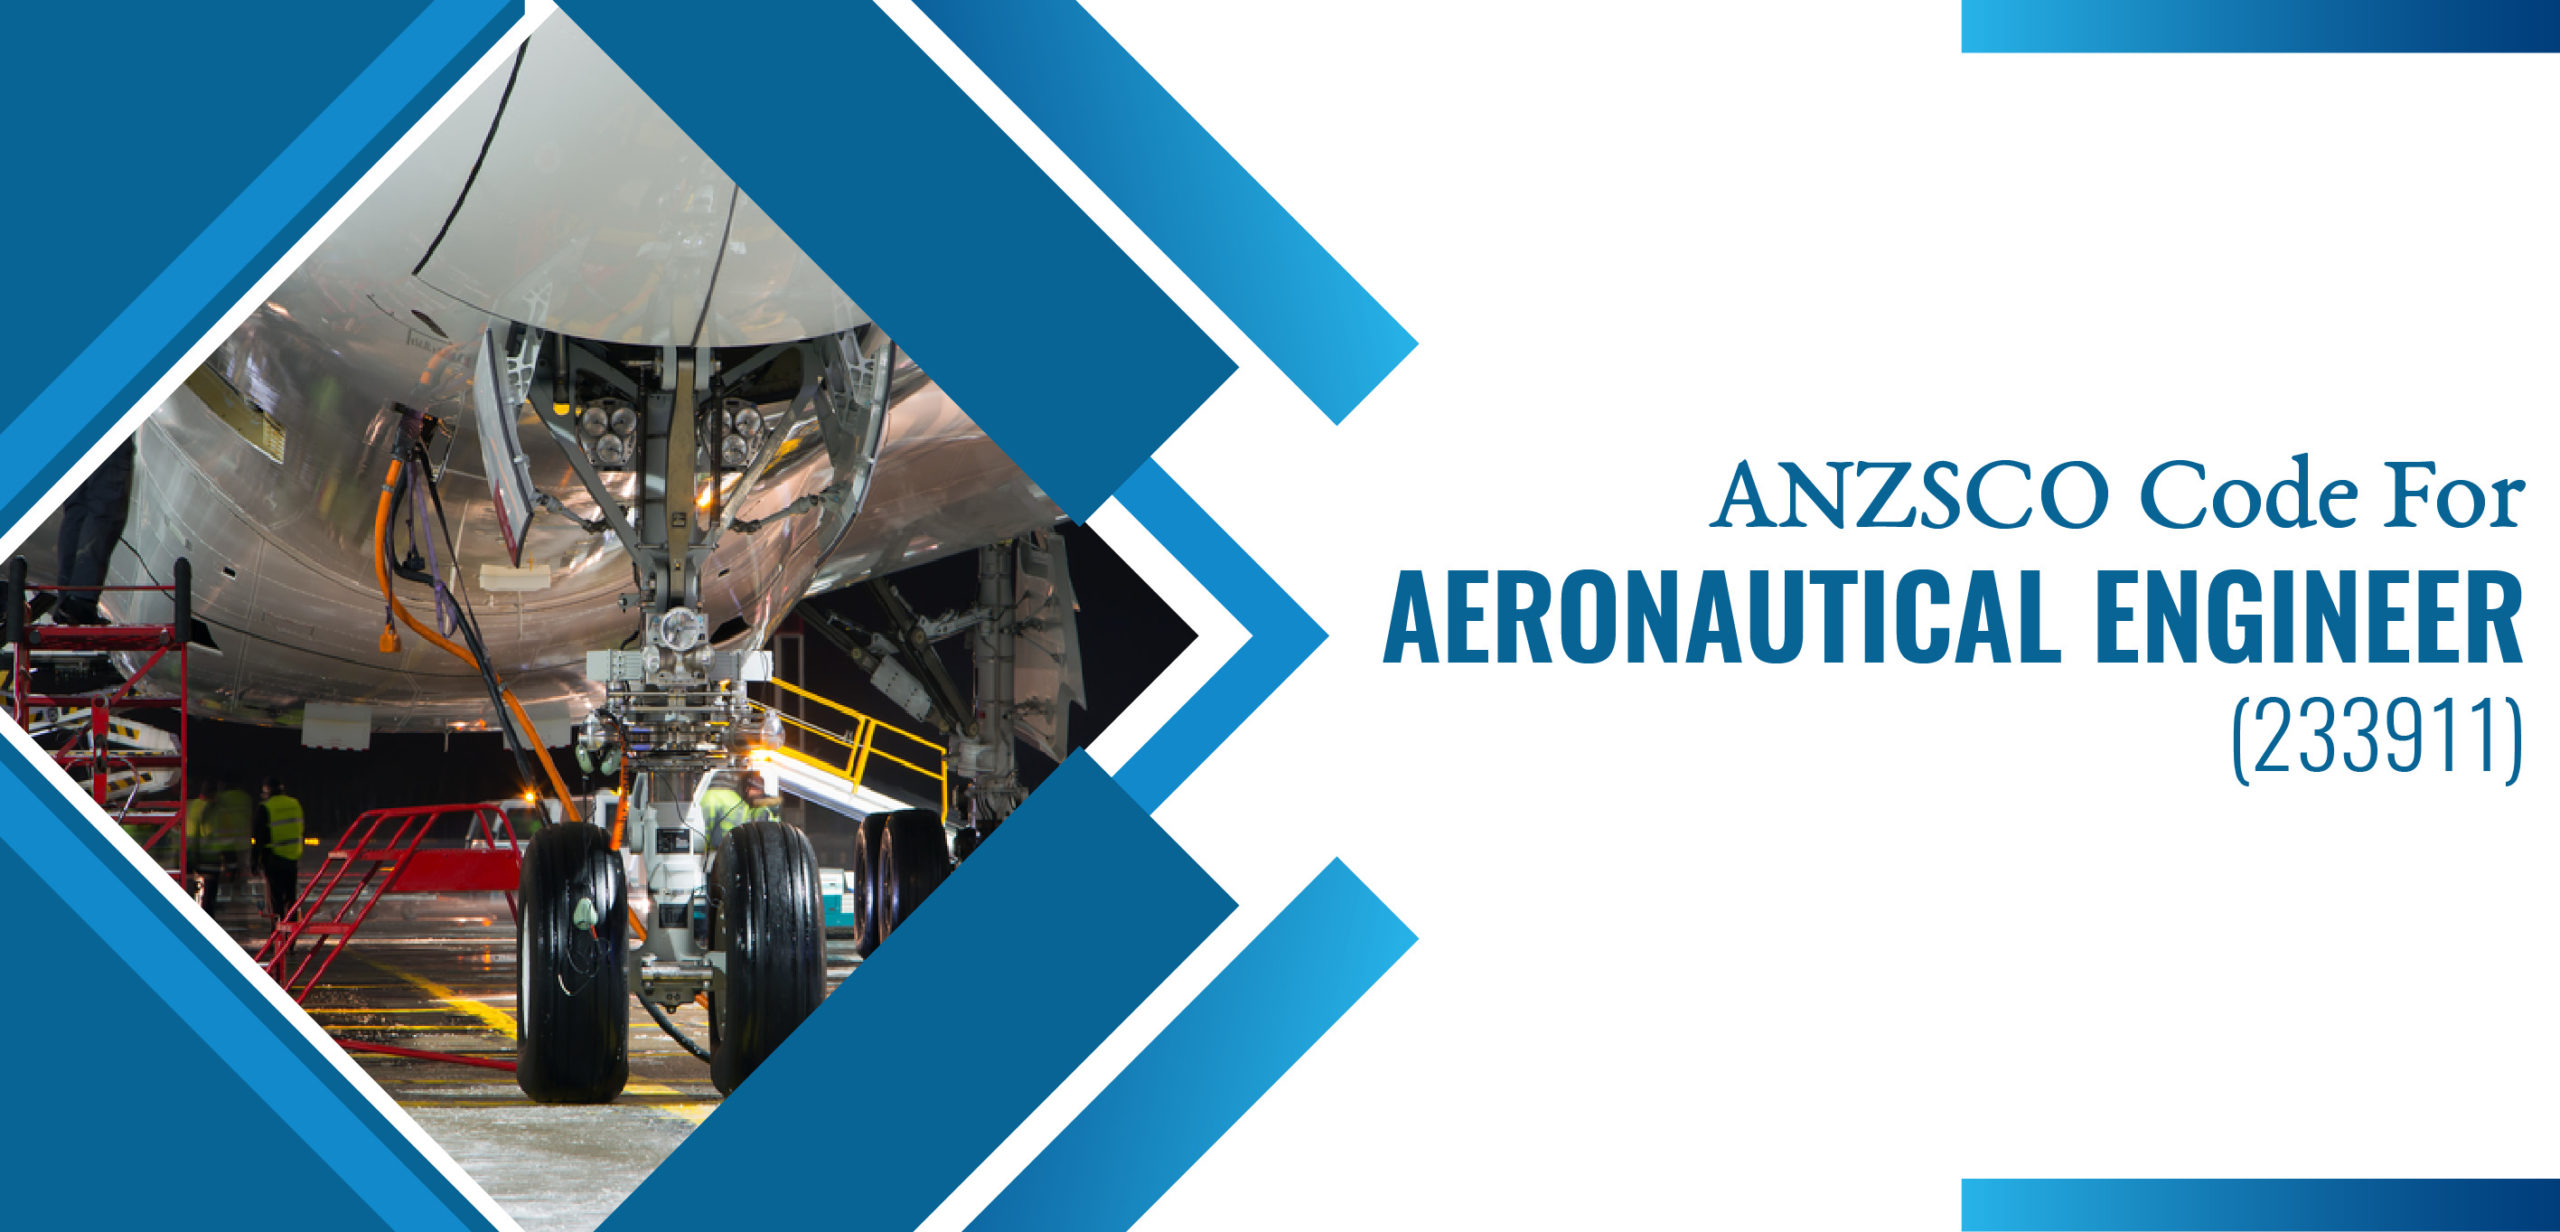 ANZSCO Code for Aeronautical Engineer